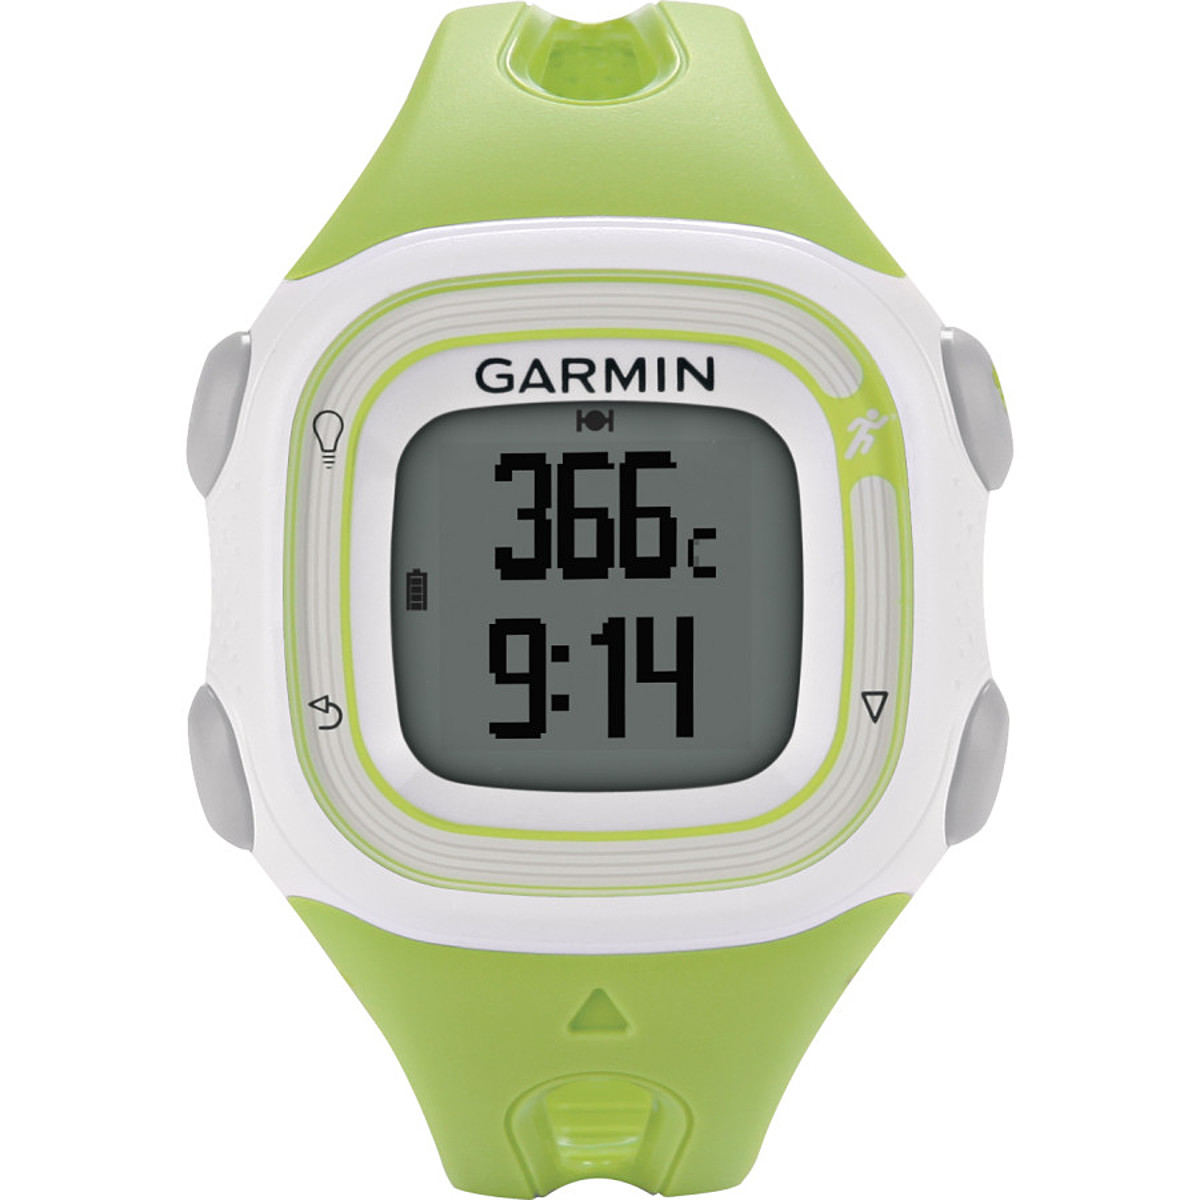 garmin forerunner 10 cycling computers competitive cyclist. Black Bedroom Furniture Sets. Home Design Ideas